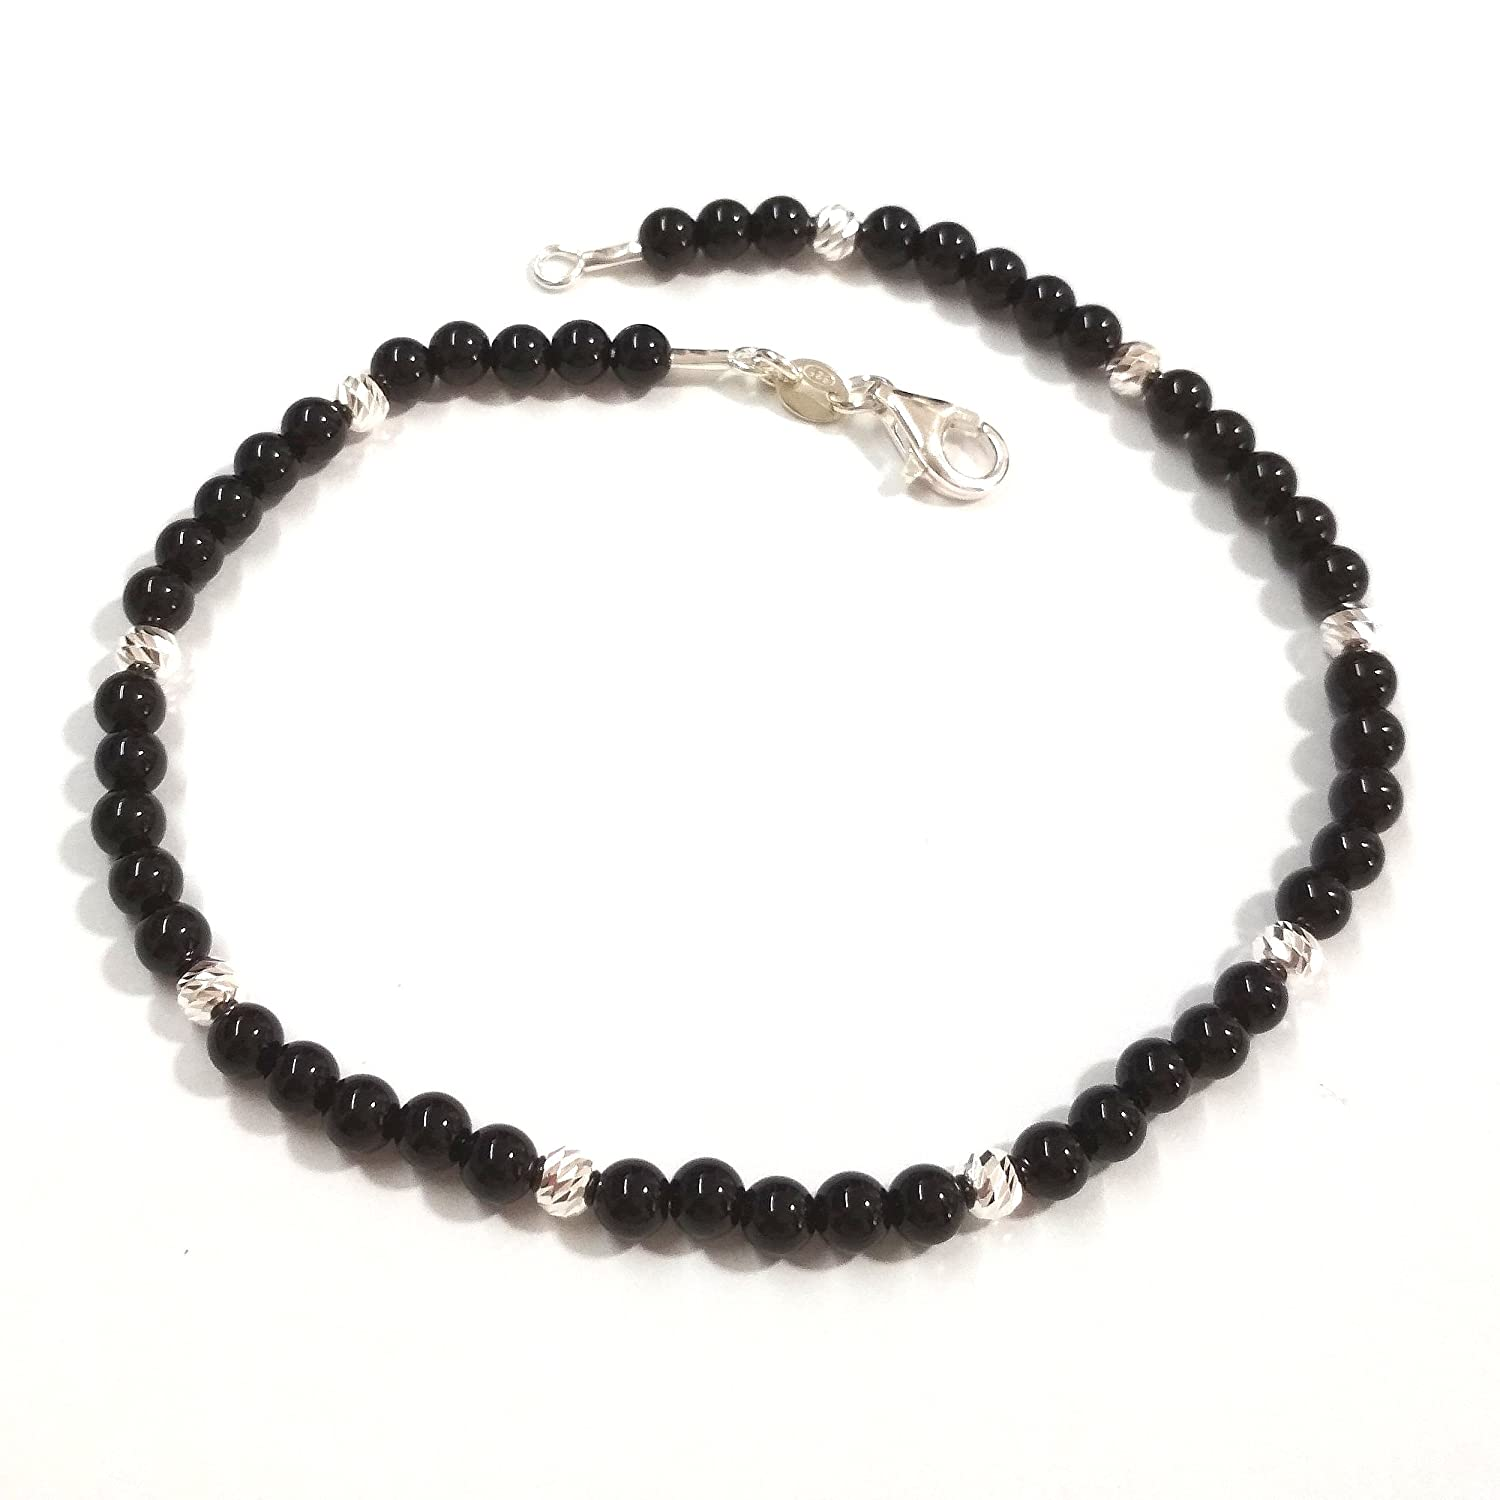 4mm Black ONYX and 925 Sterling Silver Laser Cut Beads Beaded ANKLET. Unisex. Made to your size.